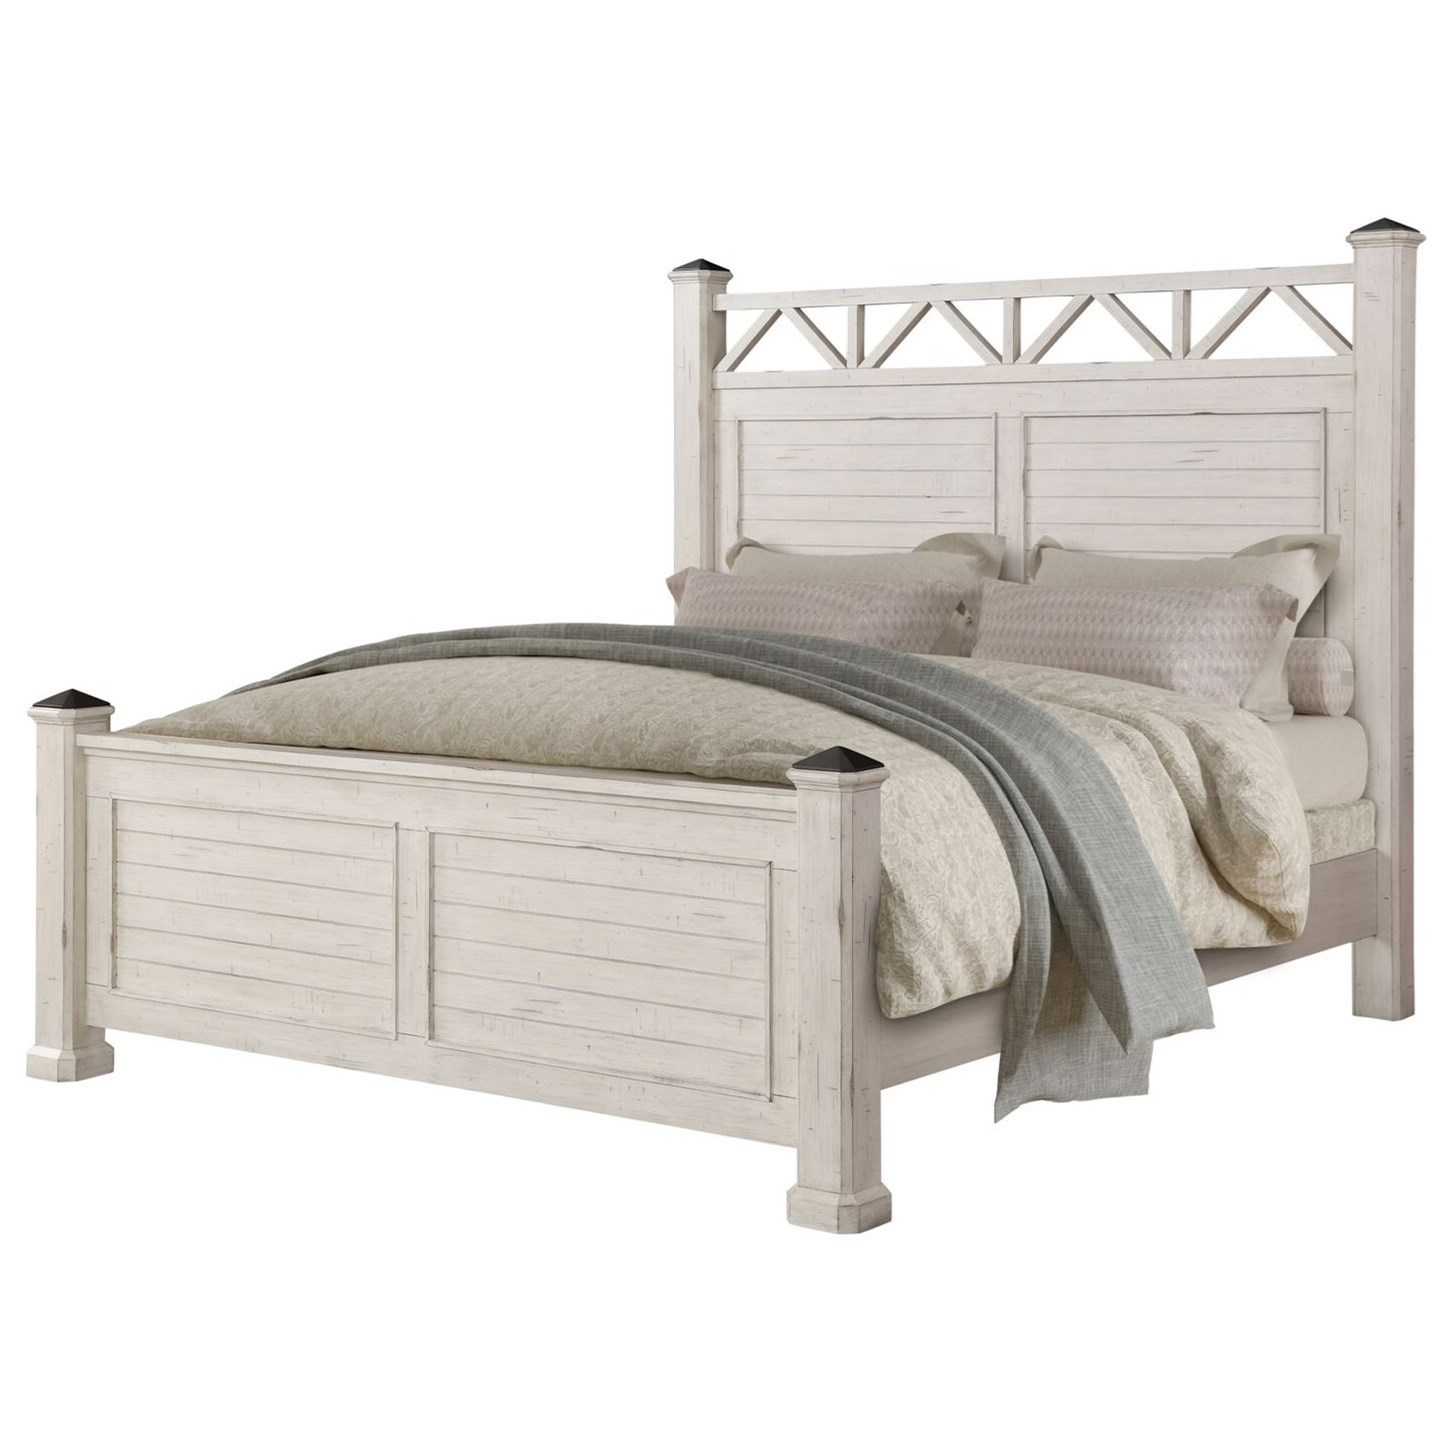 Claiborne King Poster Bed by Lifestyle at Virginia Furniture Market